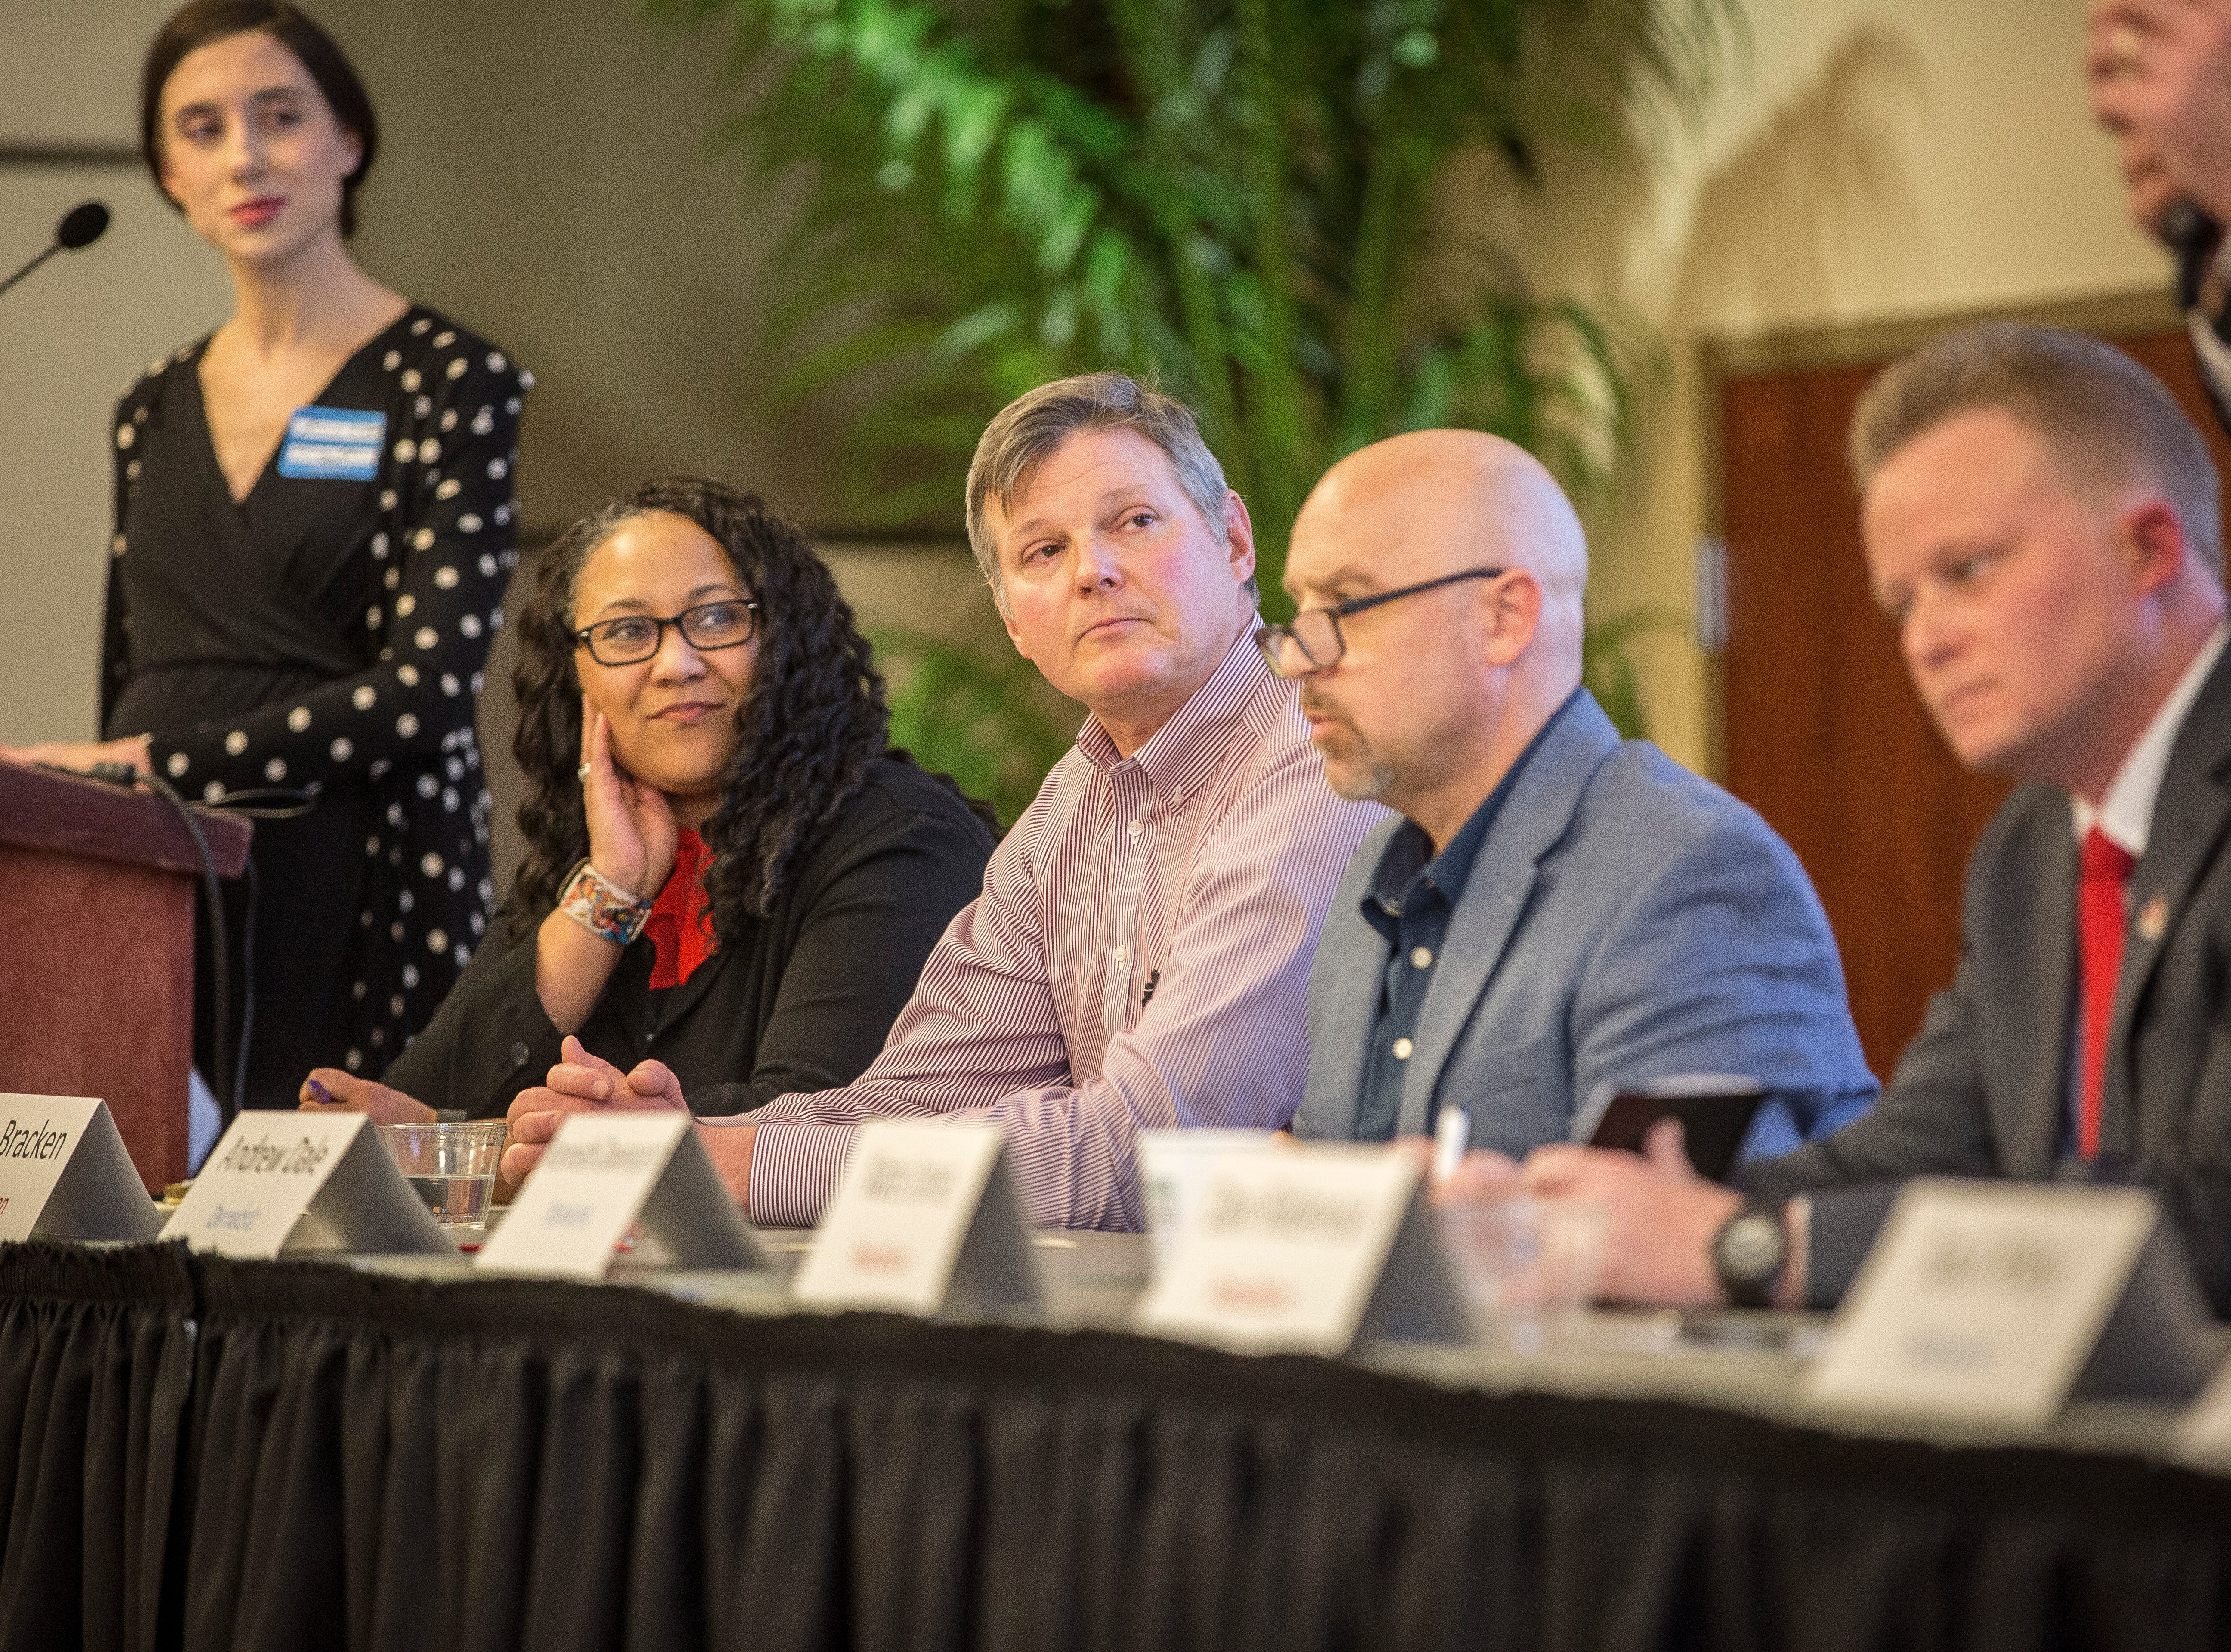 Mayoral hopefuls (r-l) Nate Jones, Andrew Dale, Tom Bracken and Terry Whitt Bailey appear at the IDEA Conference in early May at Ball State University.